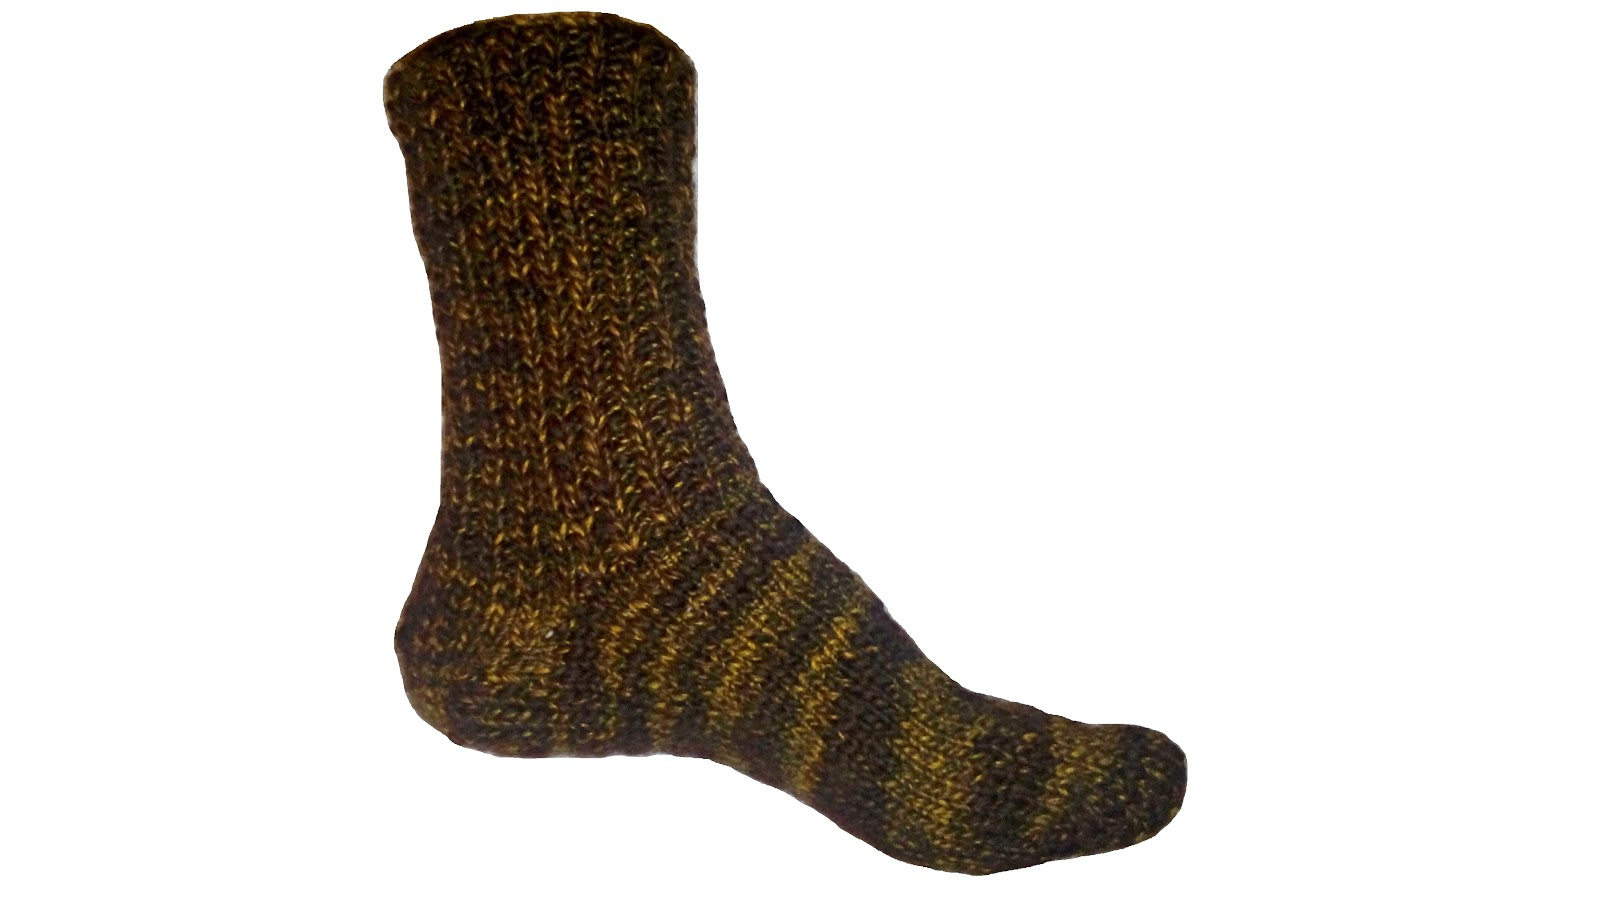 2-AT-A-Time Toe-Up Socks